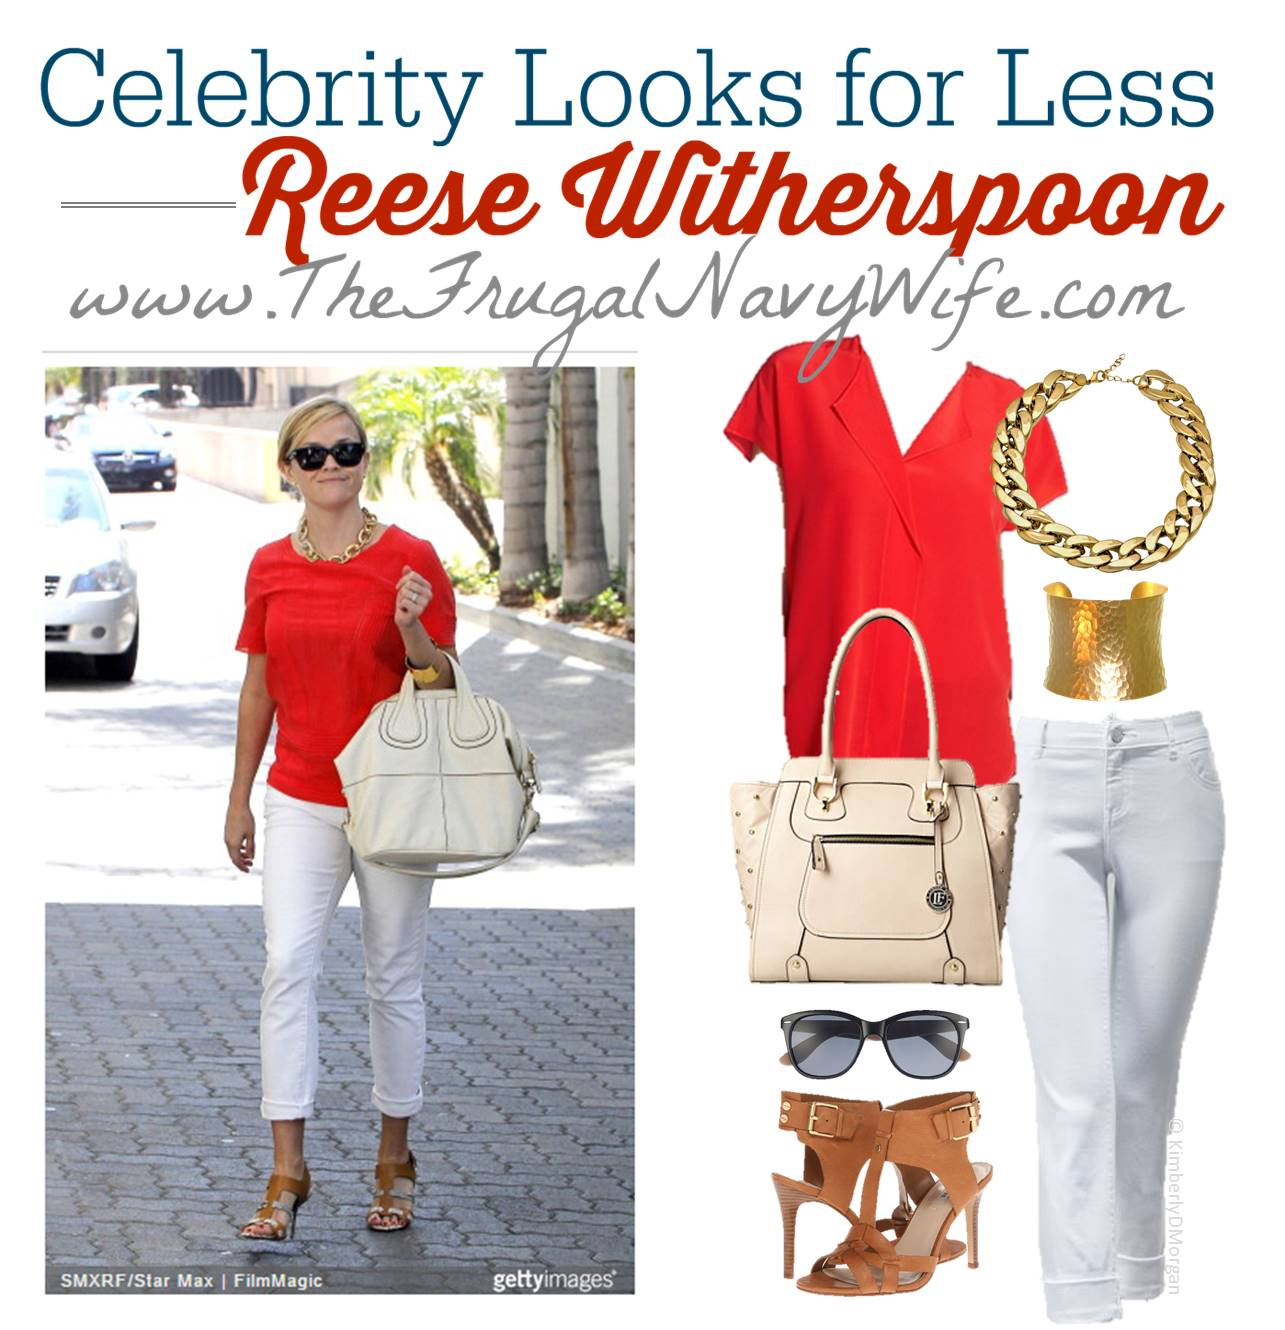 2.11 Celebrity Looks Reese Witherspoon